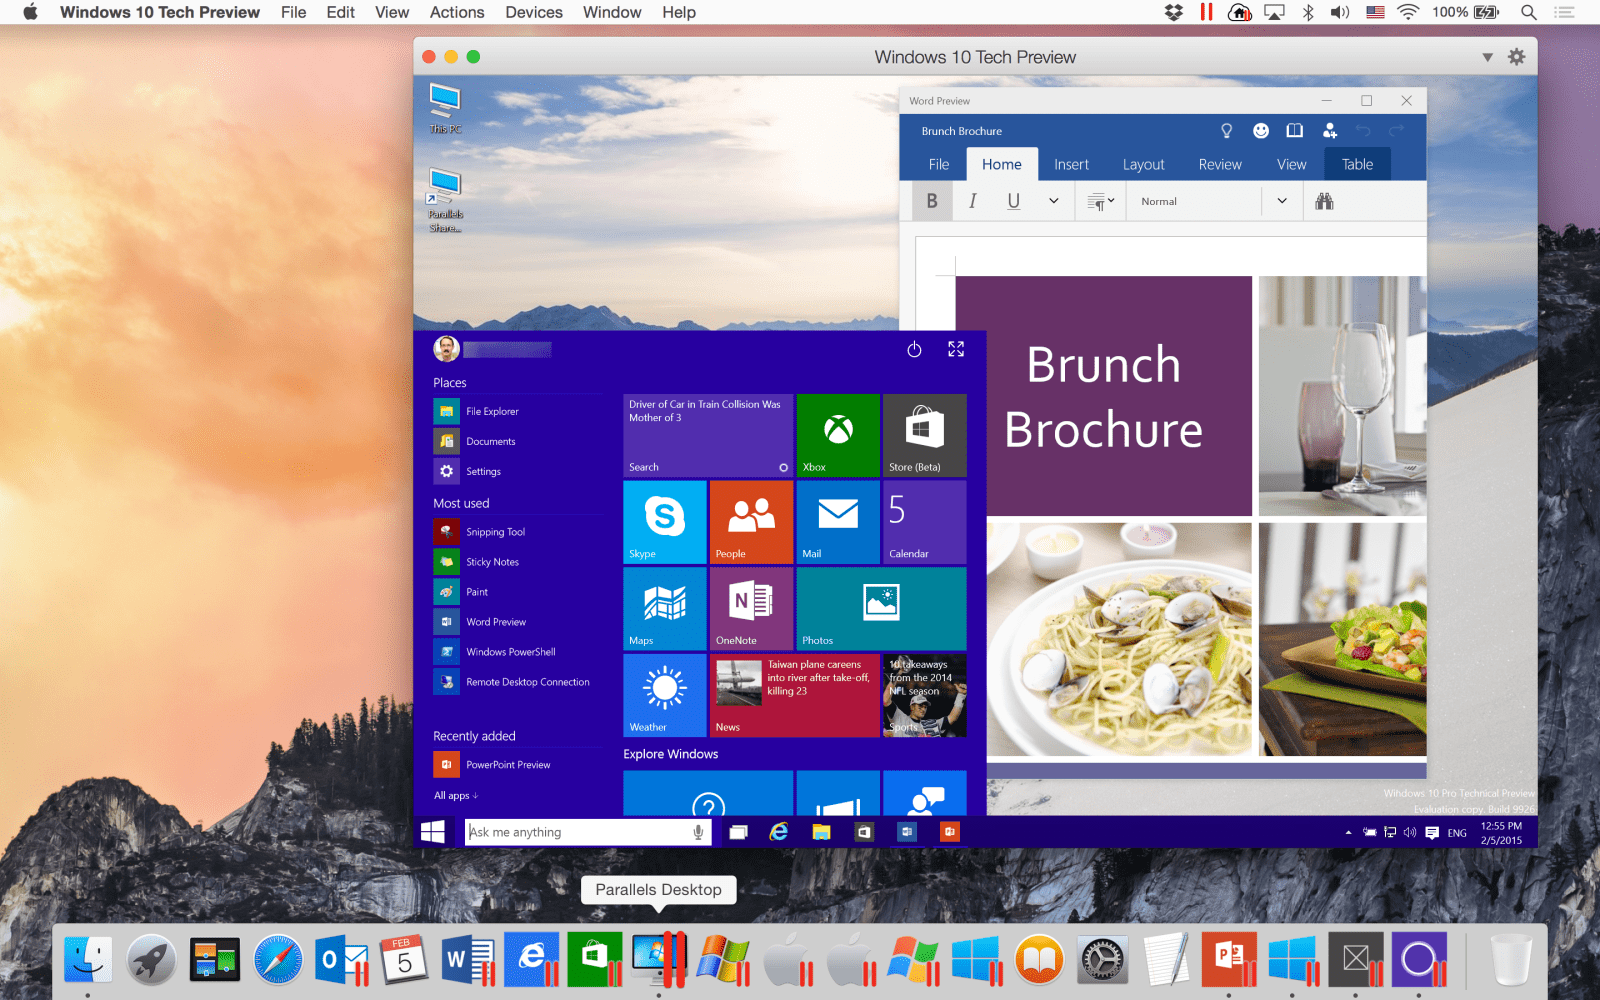 Parallels Desktop 10 updated with support for Windows 10 and Microsoft Office previews